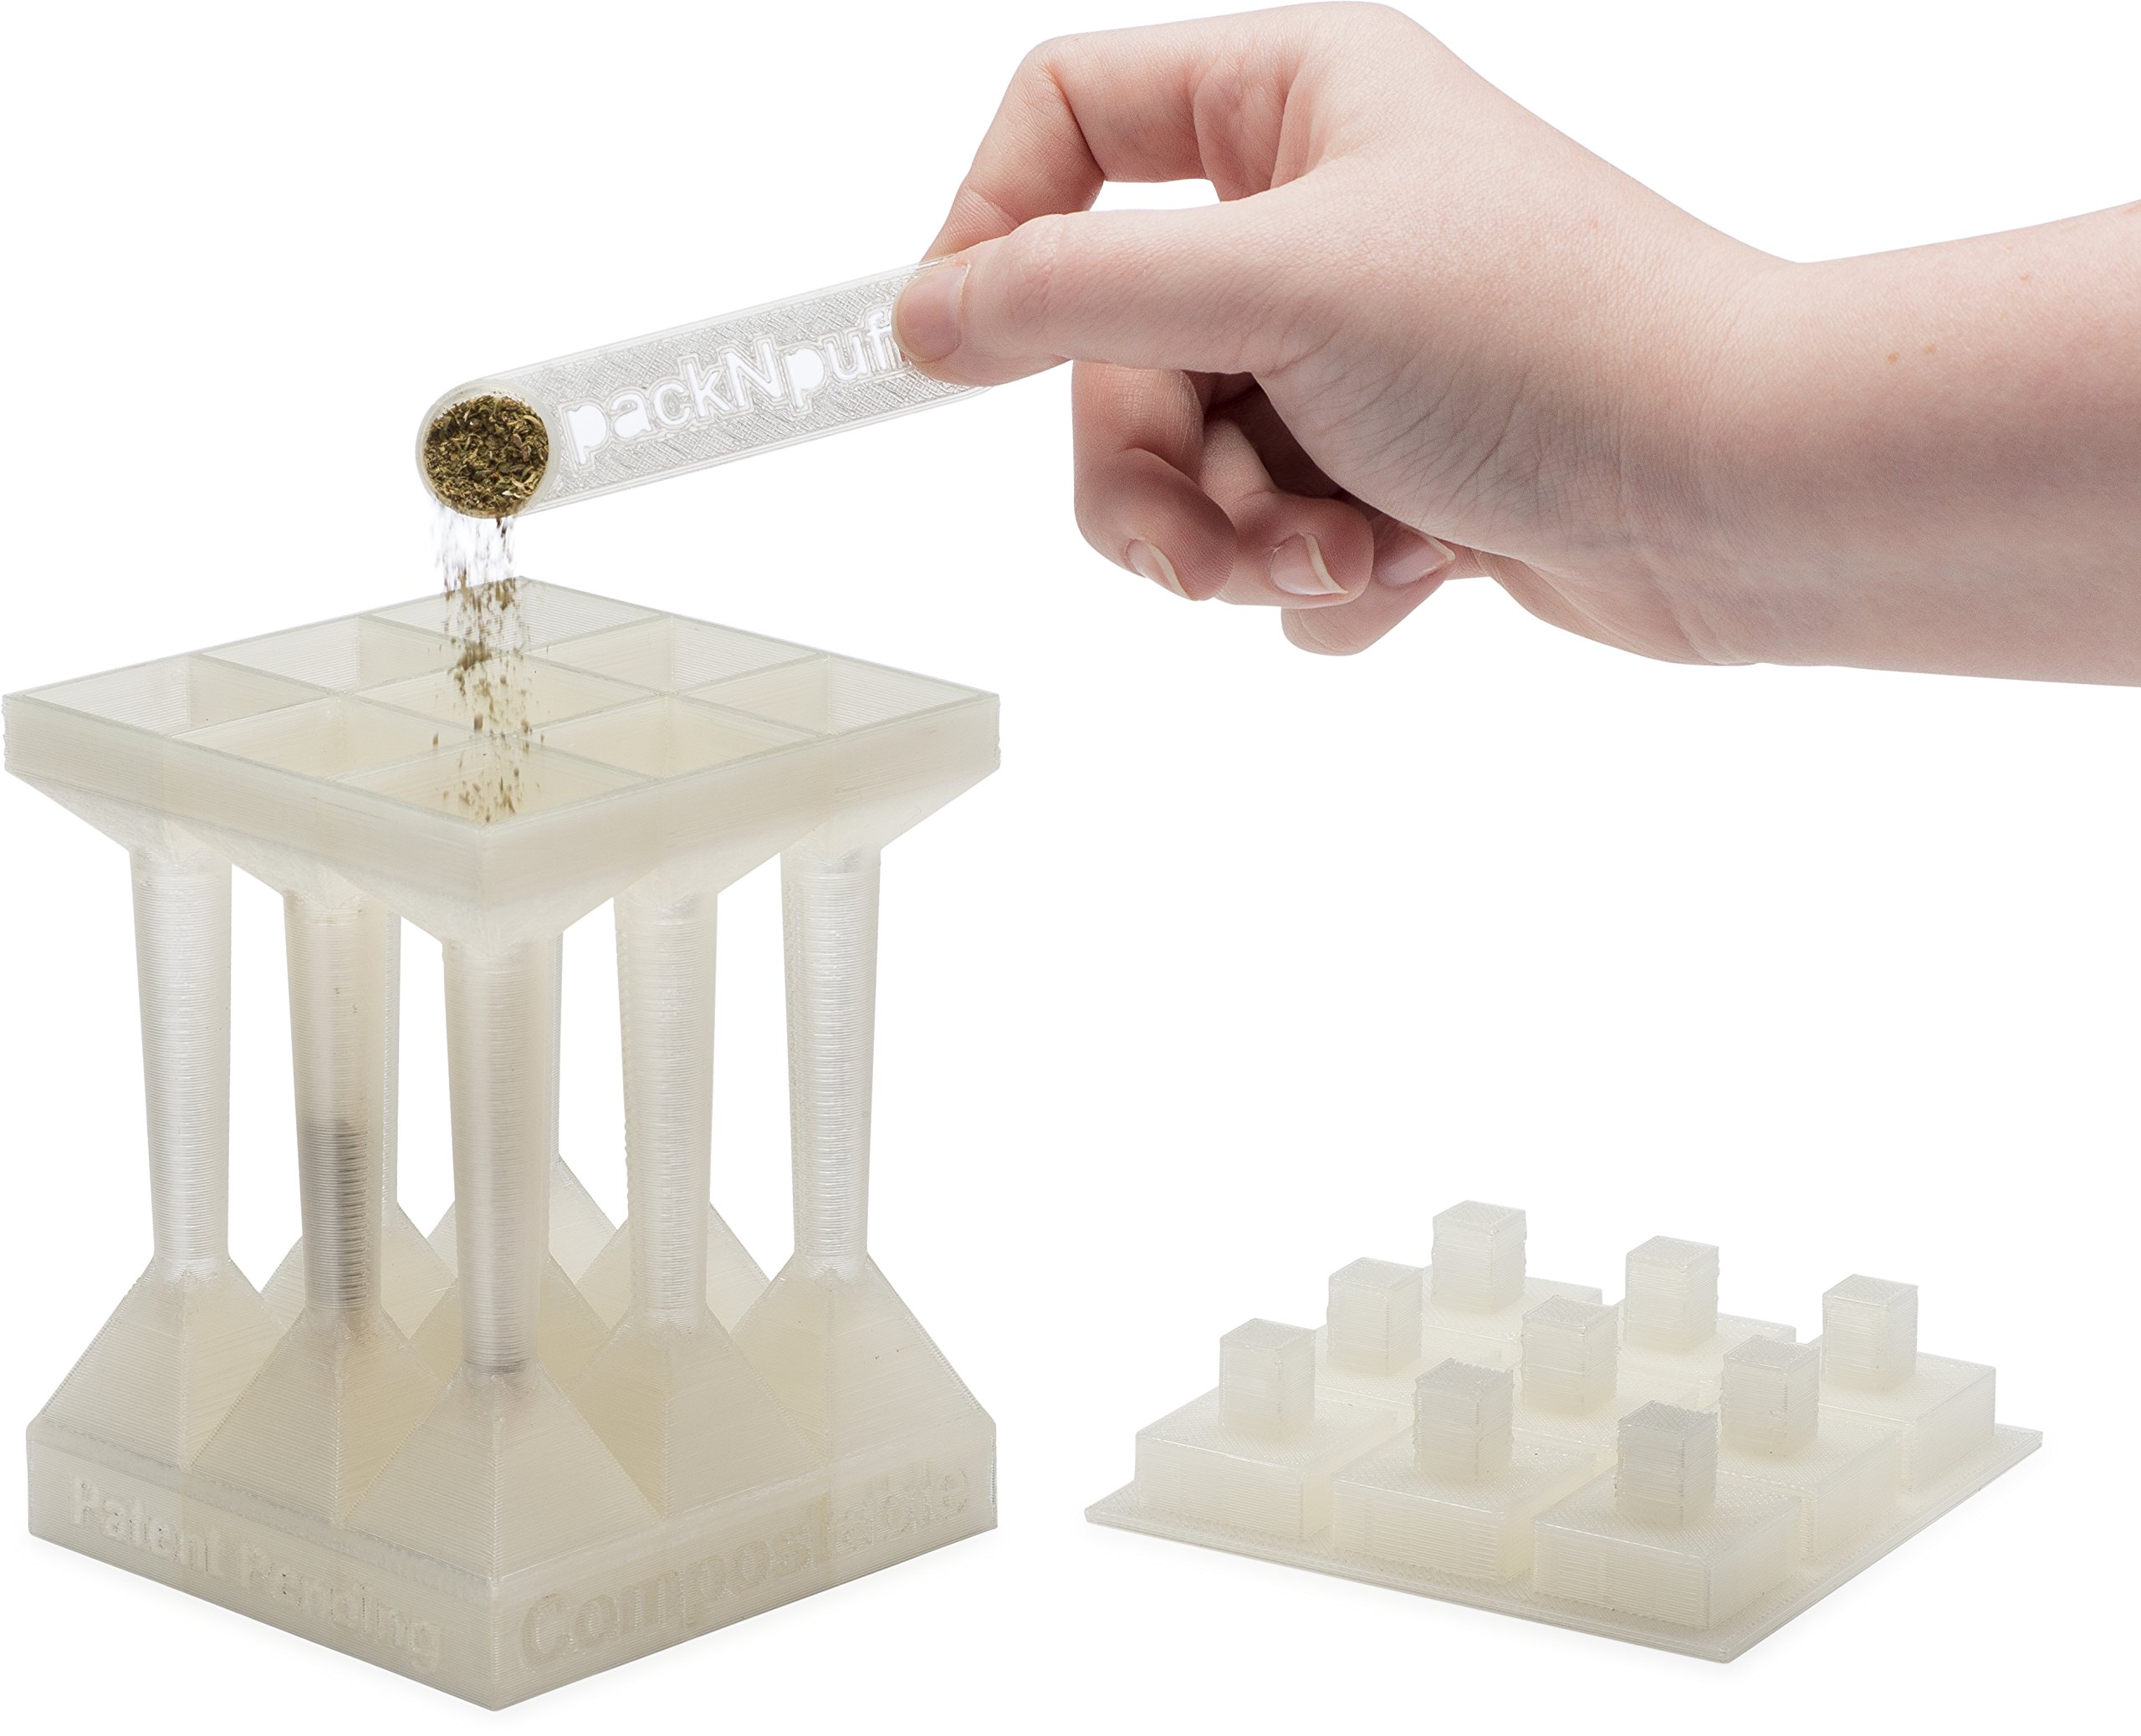 Cone Filling System – Fill 300 Pre-Rolled Cones in 1 Hour! Easily Produce High Quality, Evenly Packed, Custom Sized Cones. Designed for Raw 1 1/4 Cones. Made of Durable Eco-Safe Plastic. by packNpuff